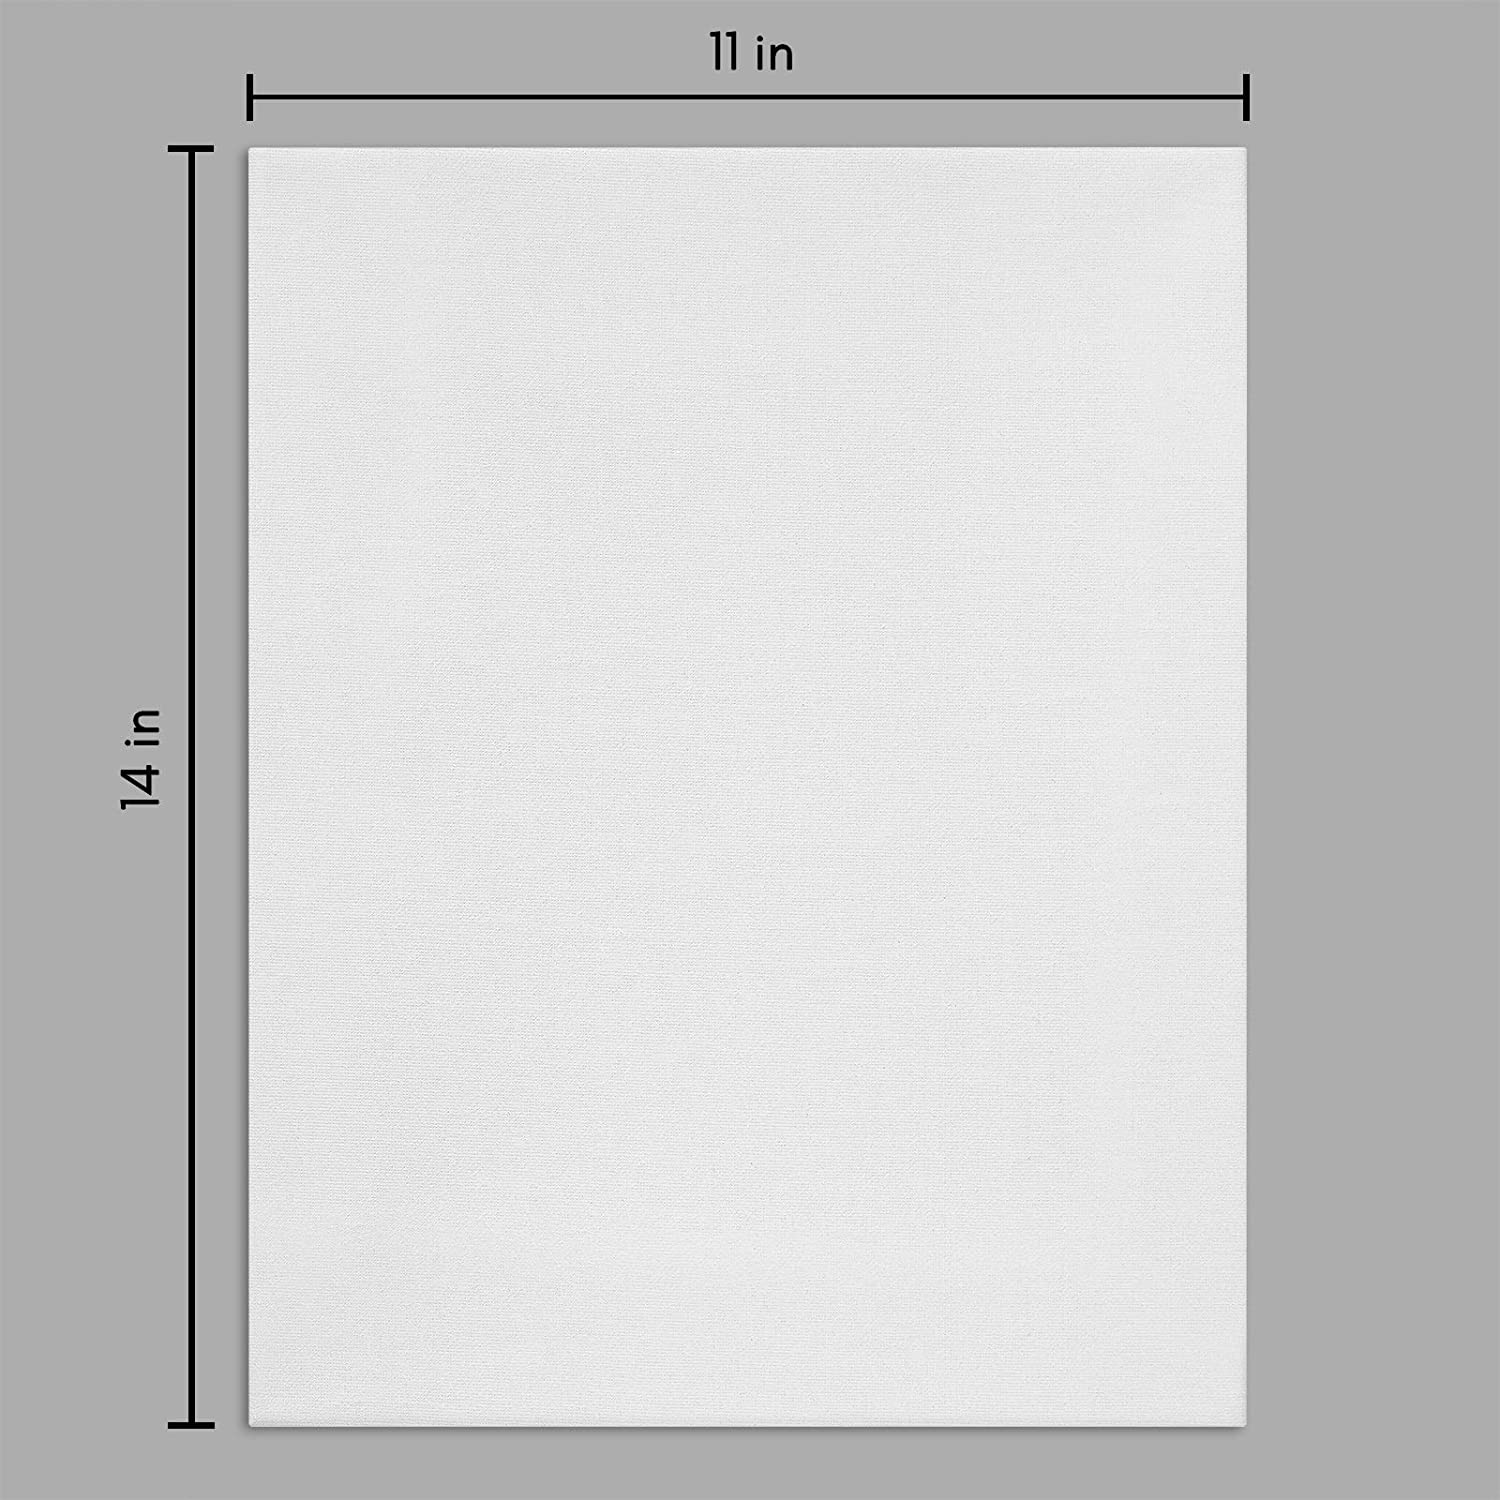 miniature 21 - Americanflat Stretched Canvas in White 100% Cotton Wooden Frames & Acid Free